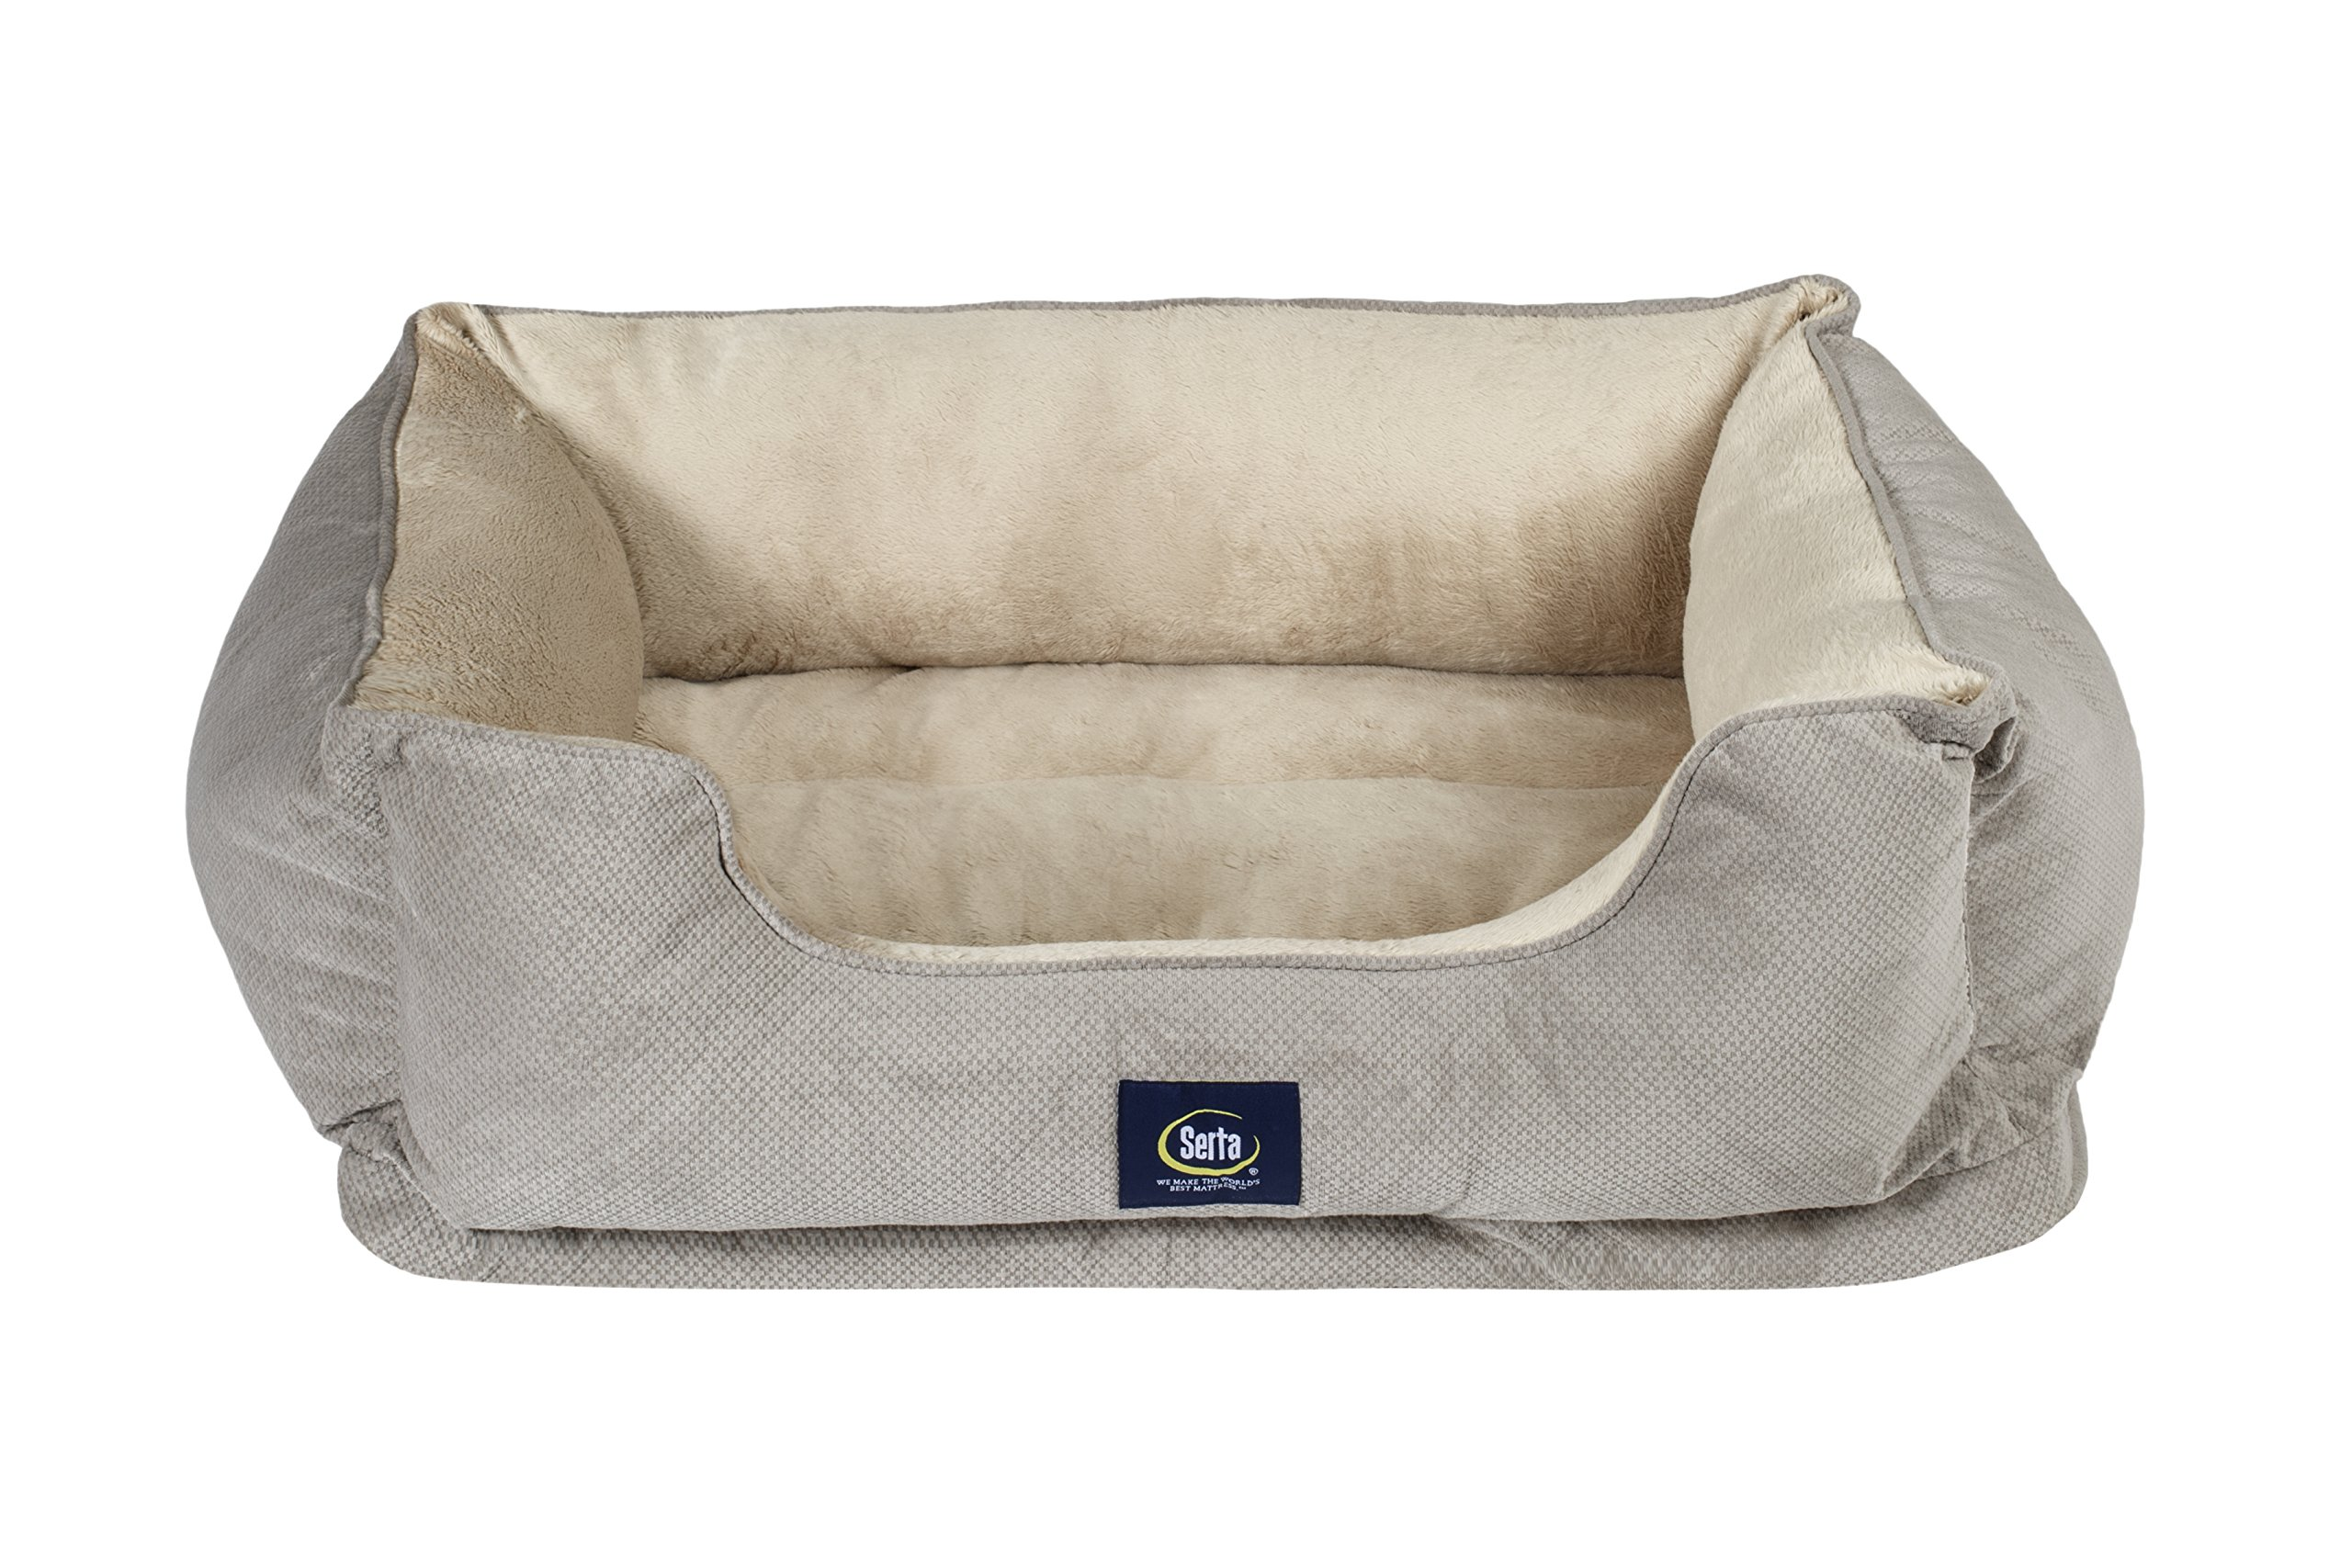 Serta Ortho Cuddler Pet Bed, Grey